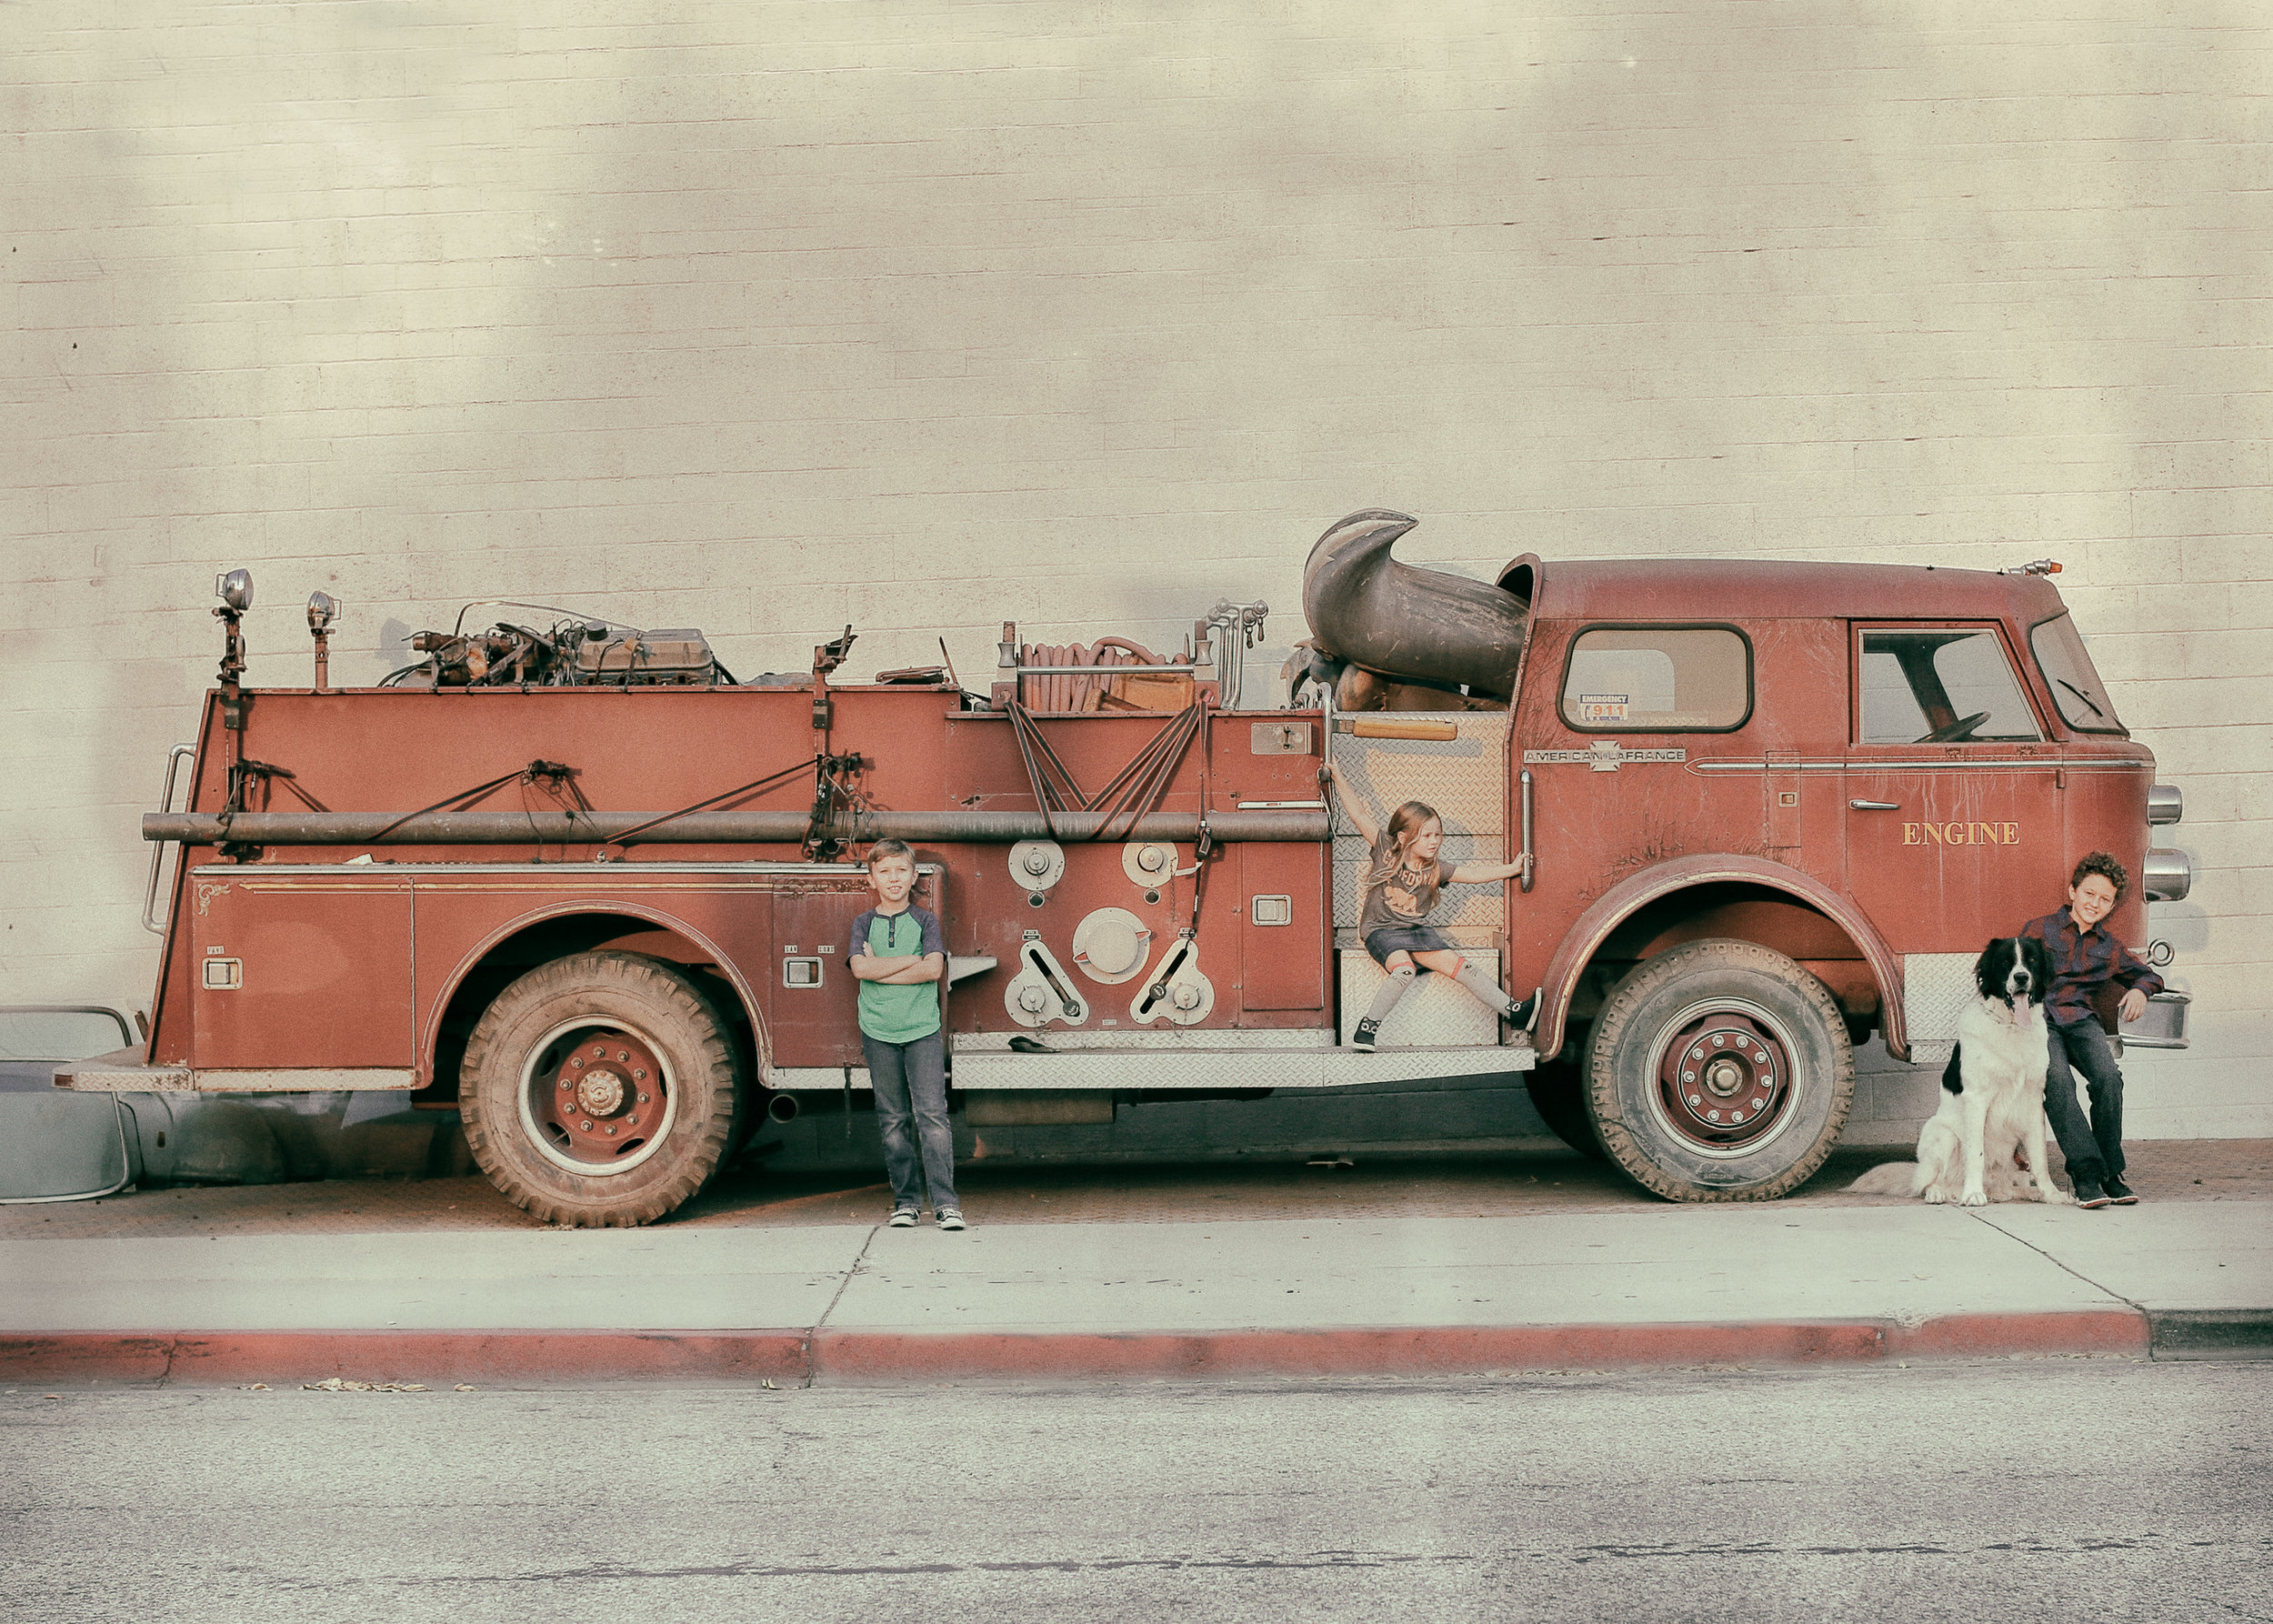 70th Birthday Gift - For my Dad's 70th birthday, I wanted to give him a unique portrait of the grandkids in front of this vintage fire truck. I added a vintage feel when editing, which is not normally my style, but I wanted something unique to hang in my dad's house. After printing on a wood block, it turned out to be a one-of-a-kind birthday present!